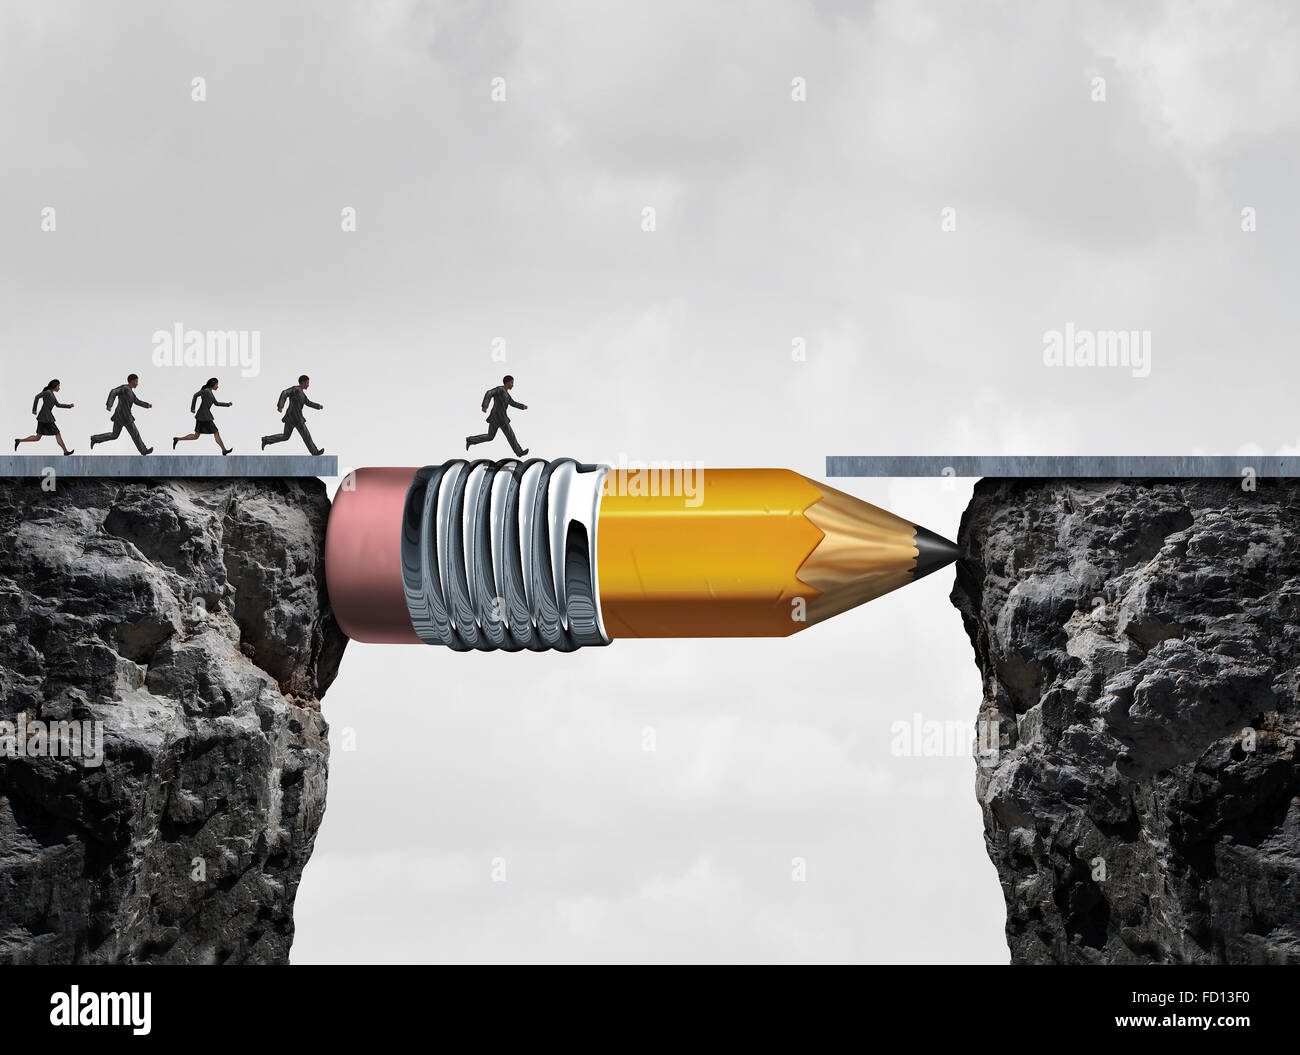 Business success symbol and conquering adversity as a group of people running from one cliff to another with the - Stock Image